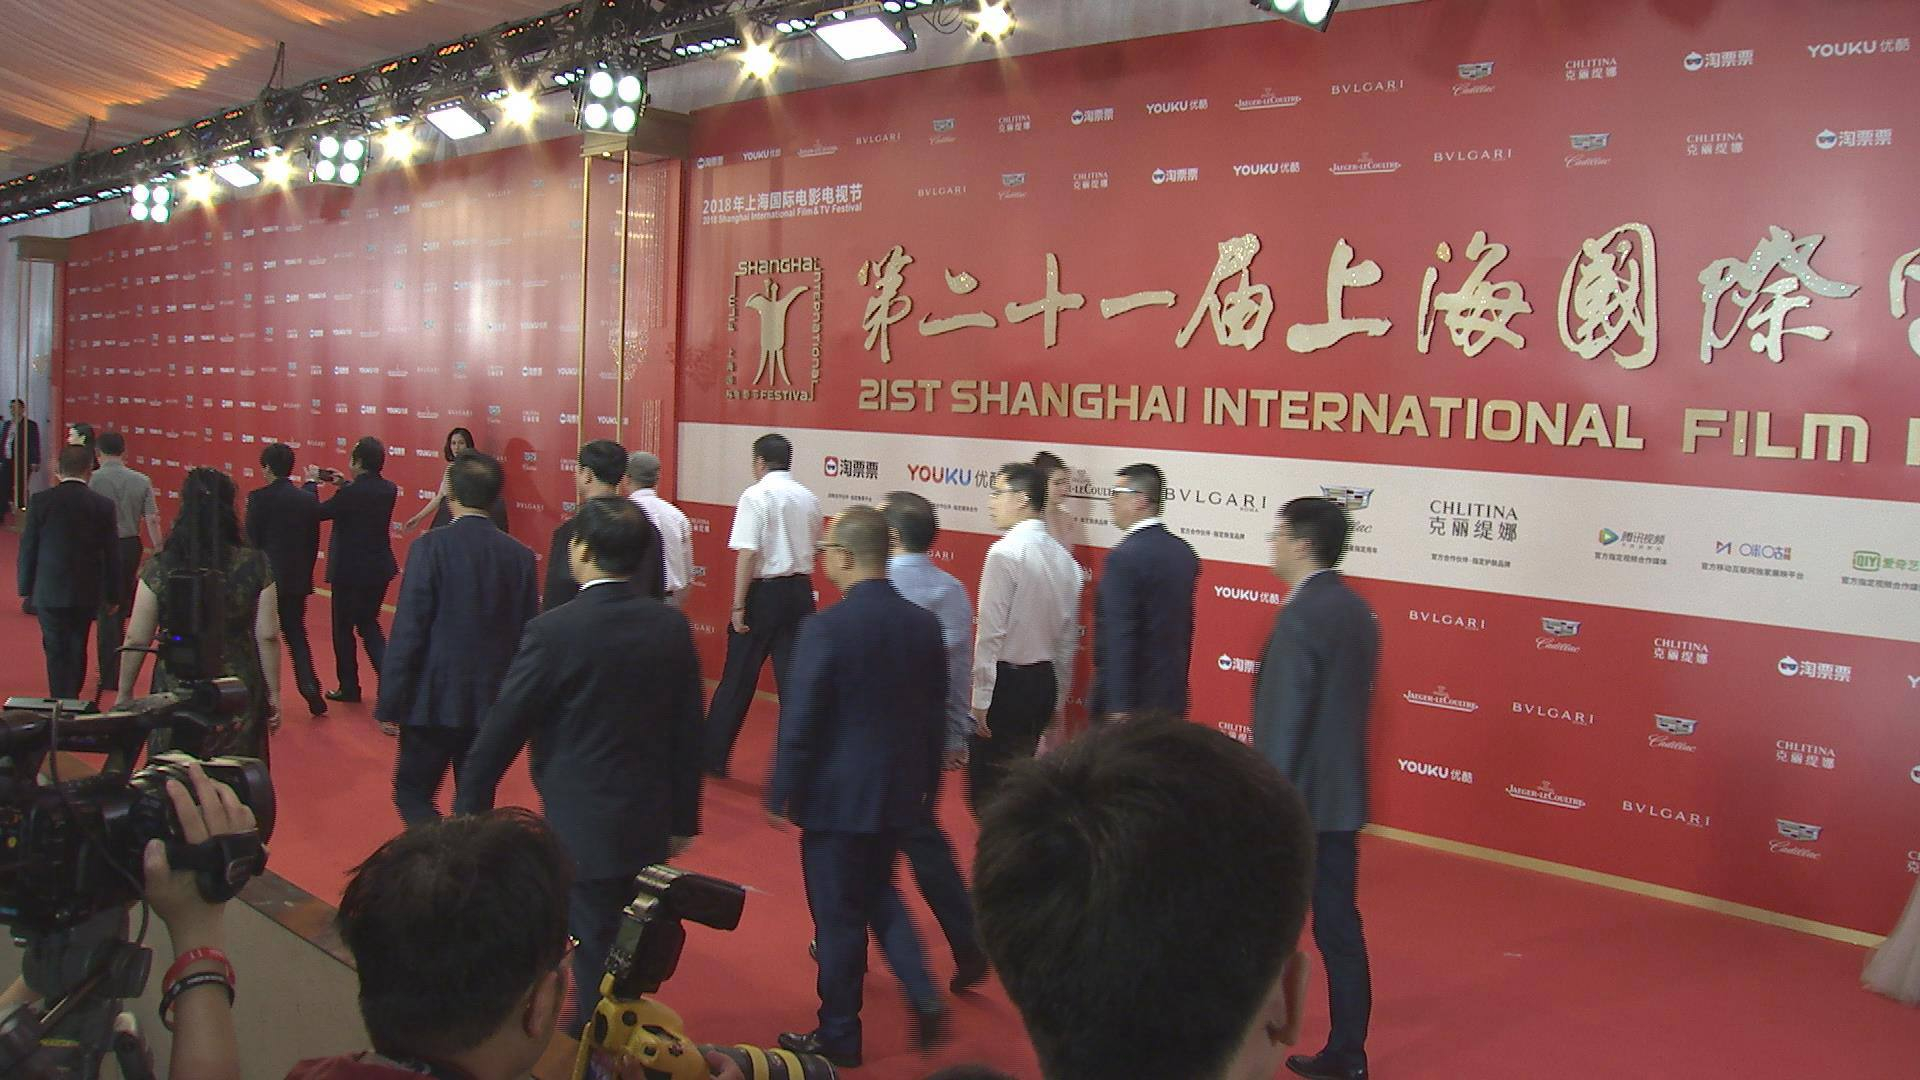 Promoting cultural exchanges through further film cooperations